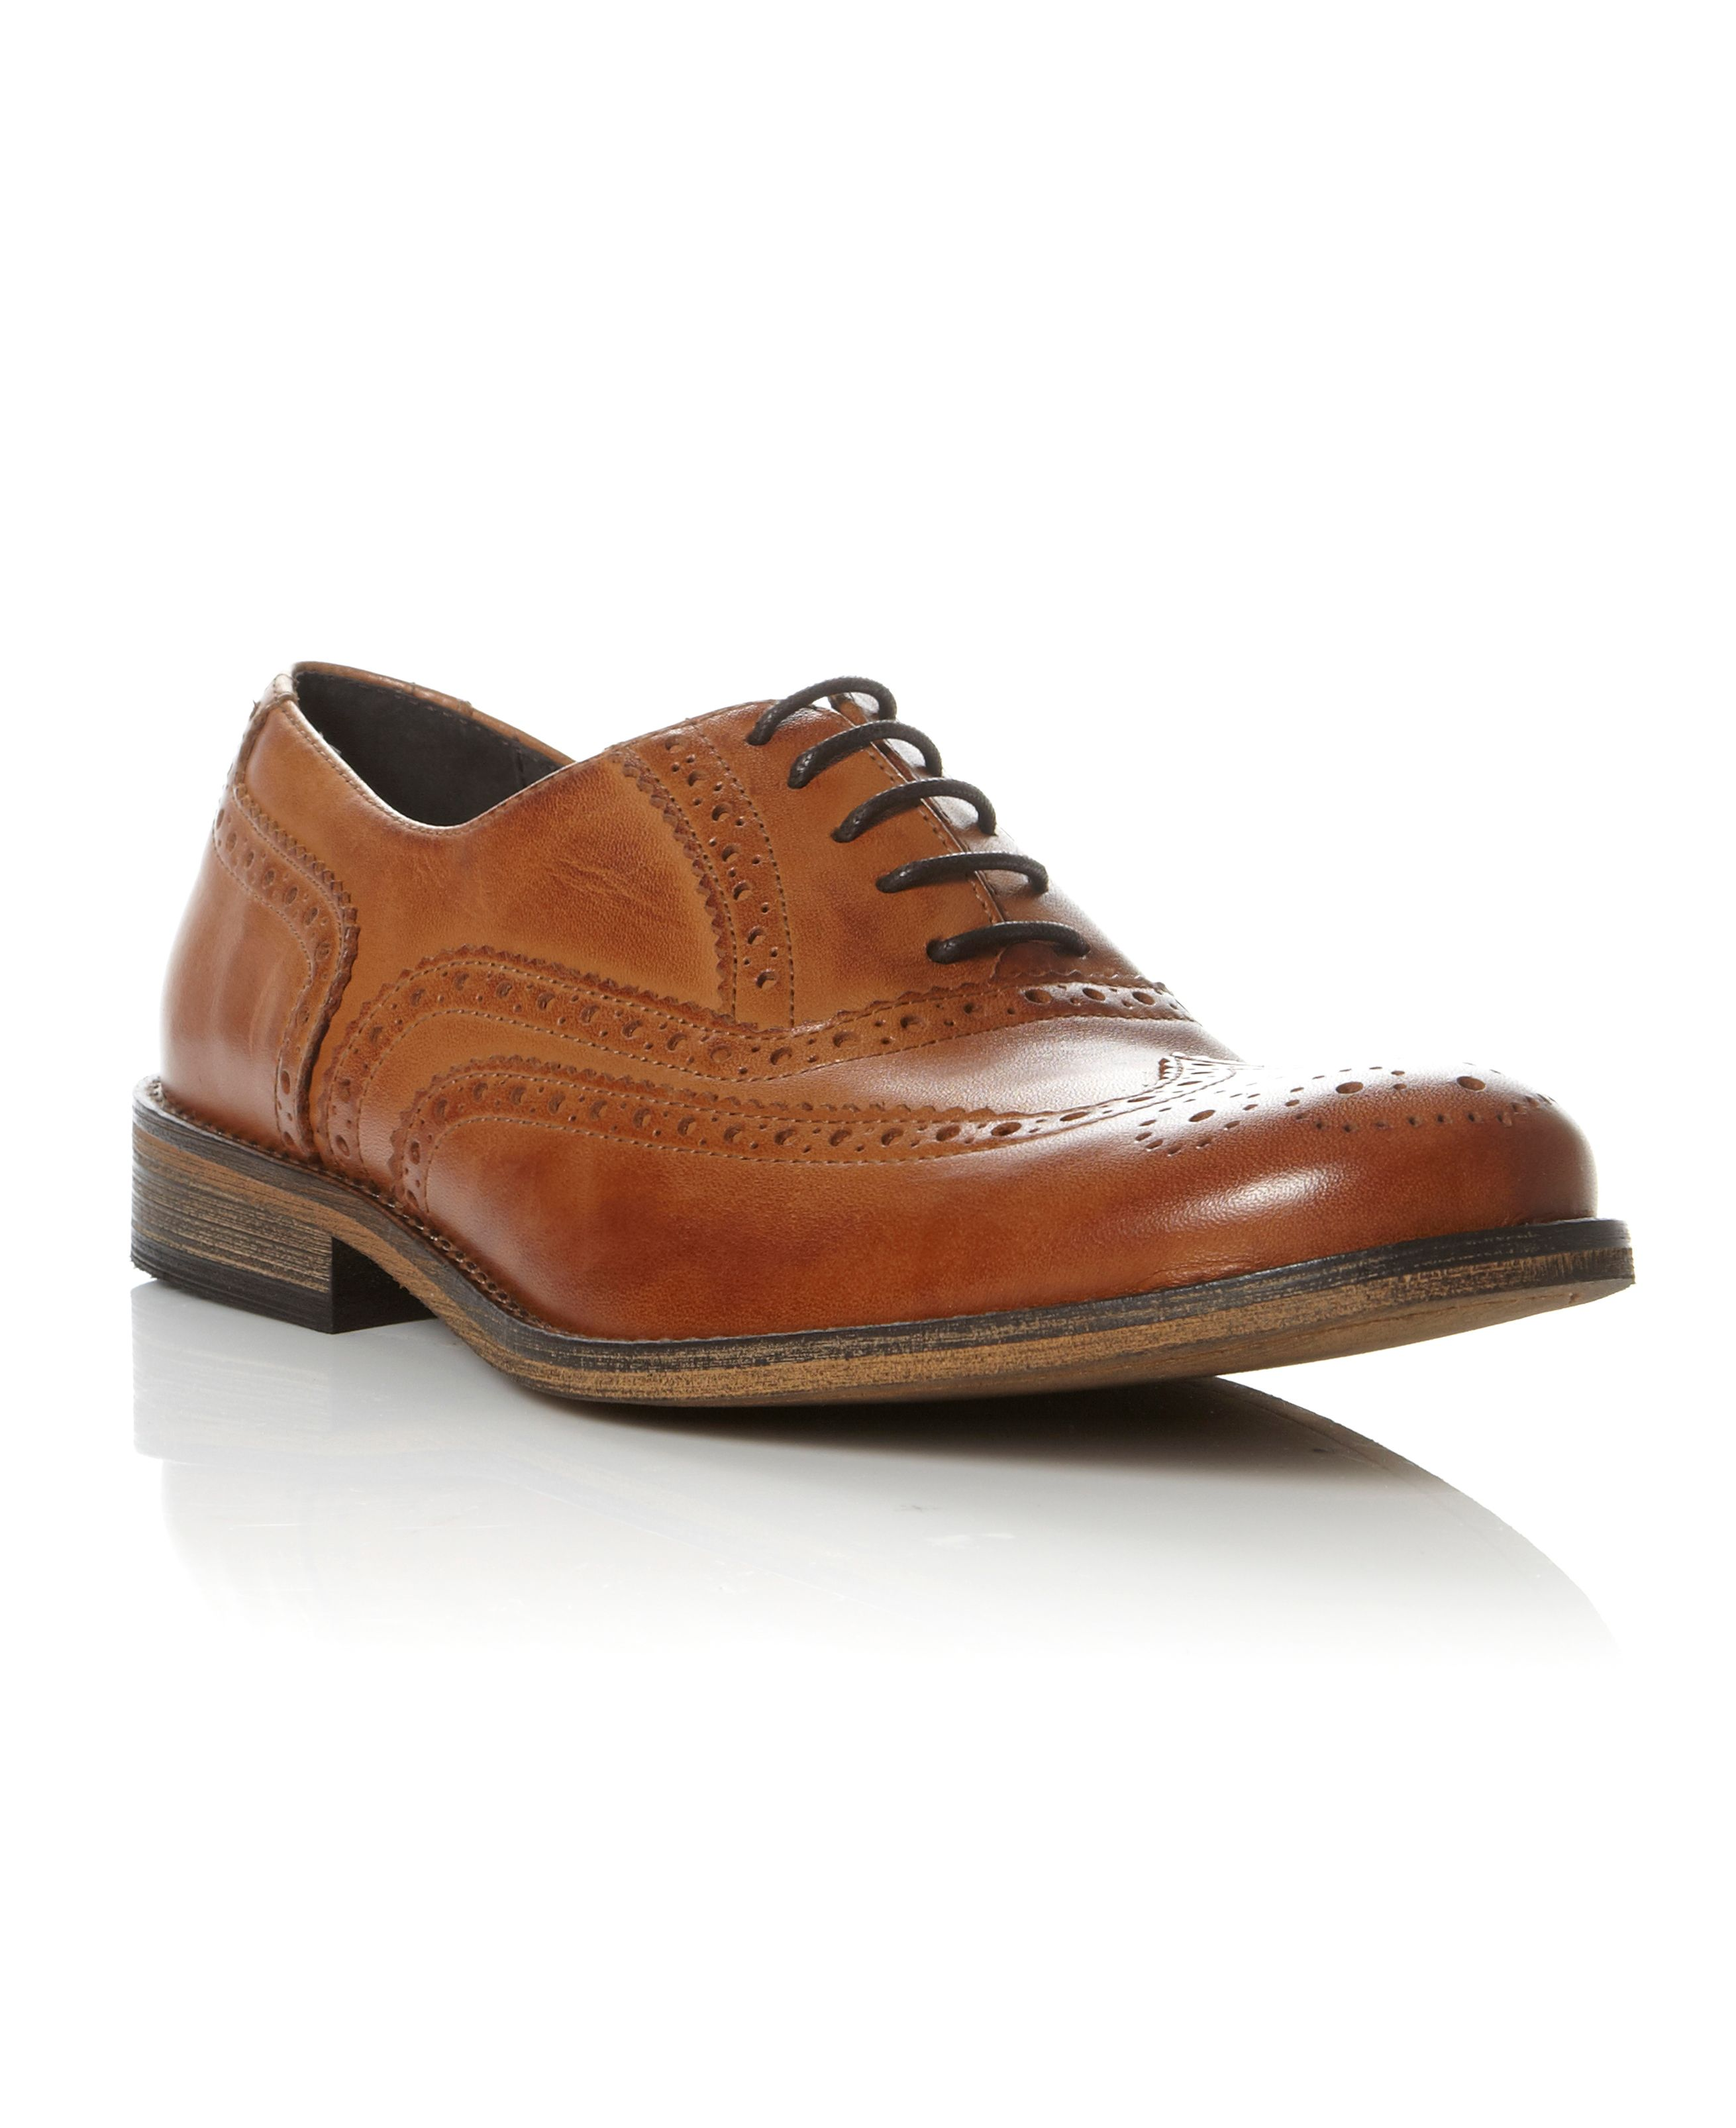 Braker casual shoes